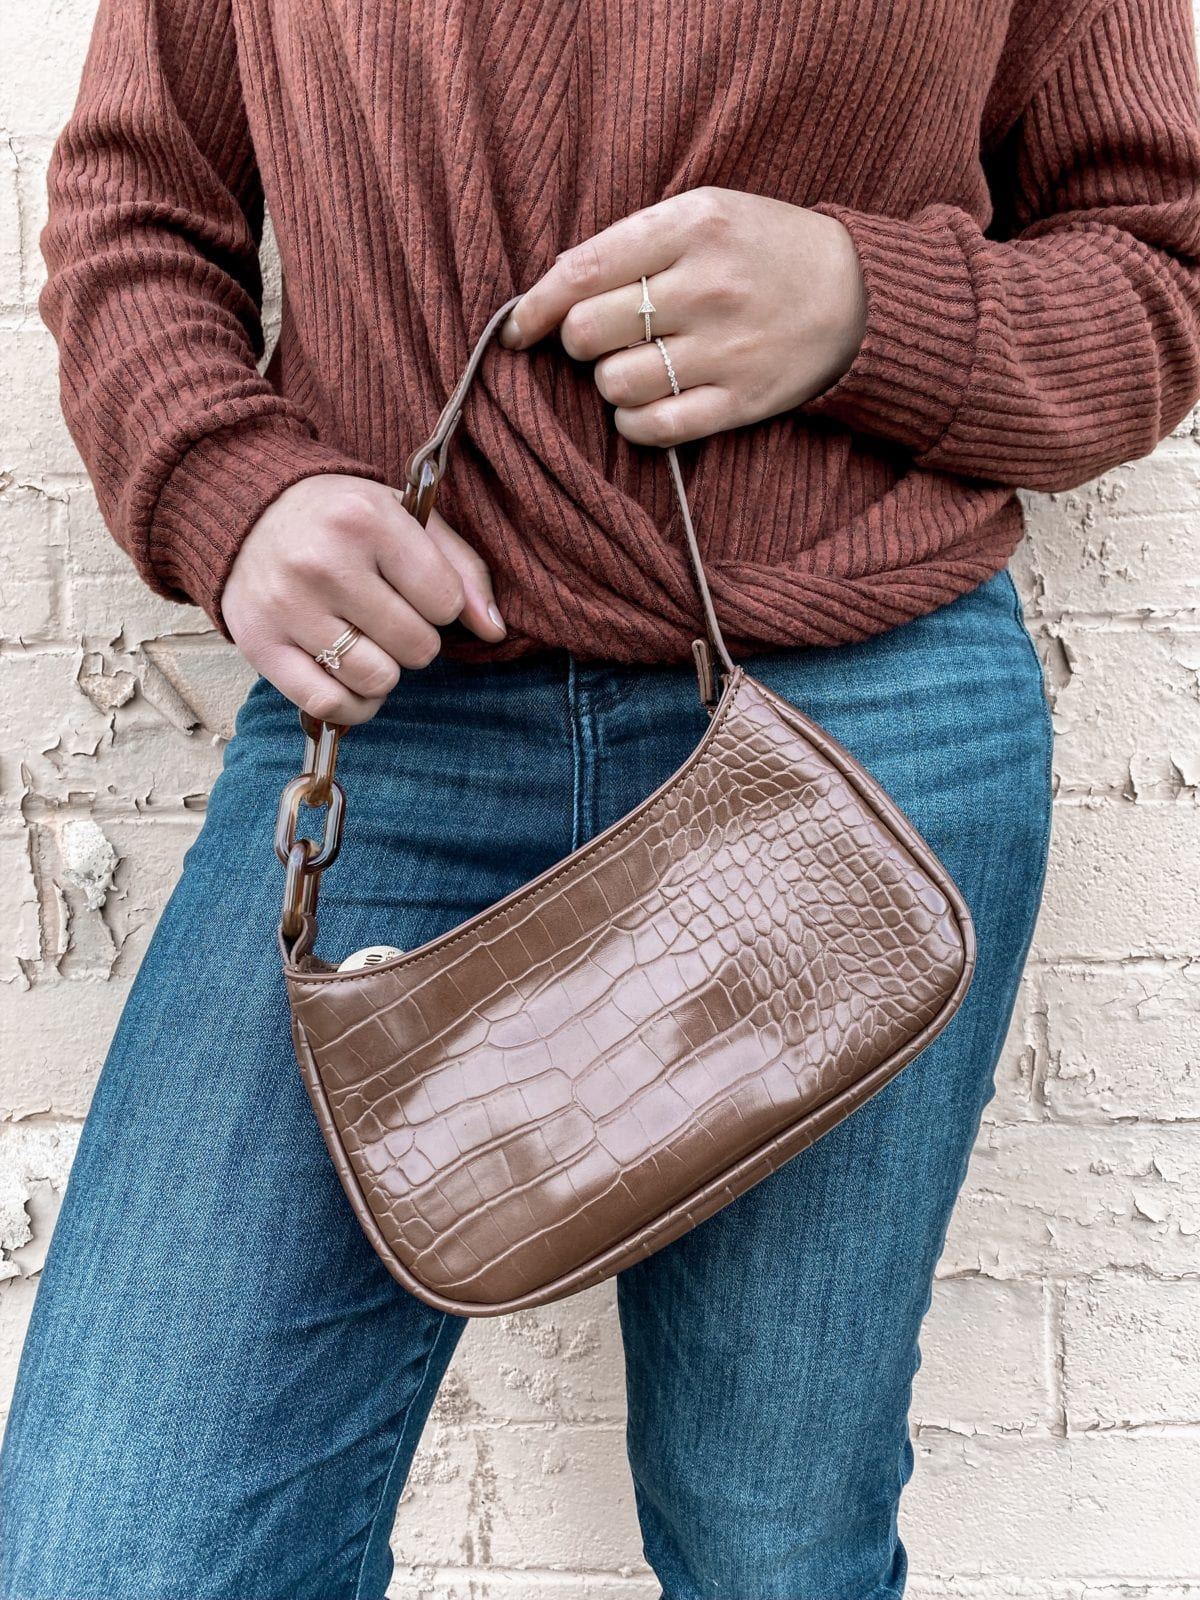 This is a close up shot of the Studio 33 shoulder bag in the brown shade.